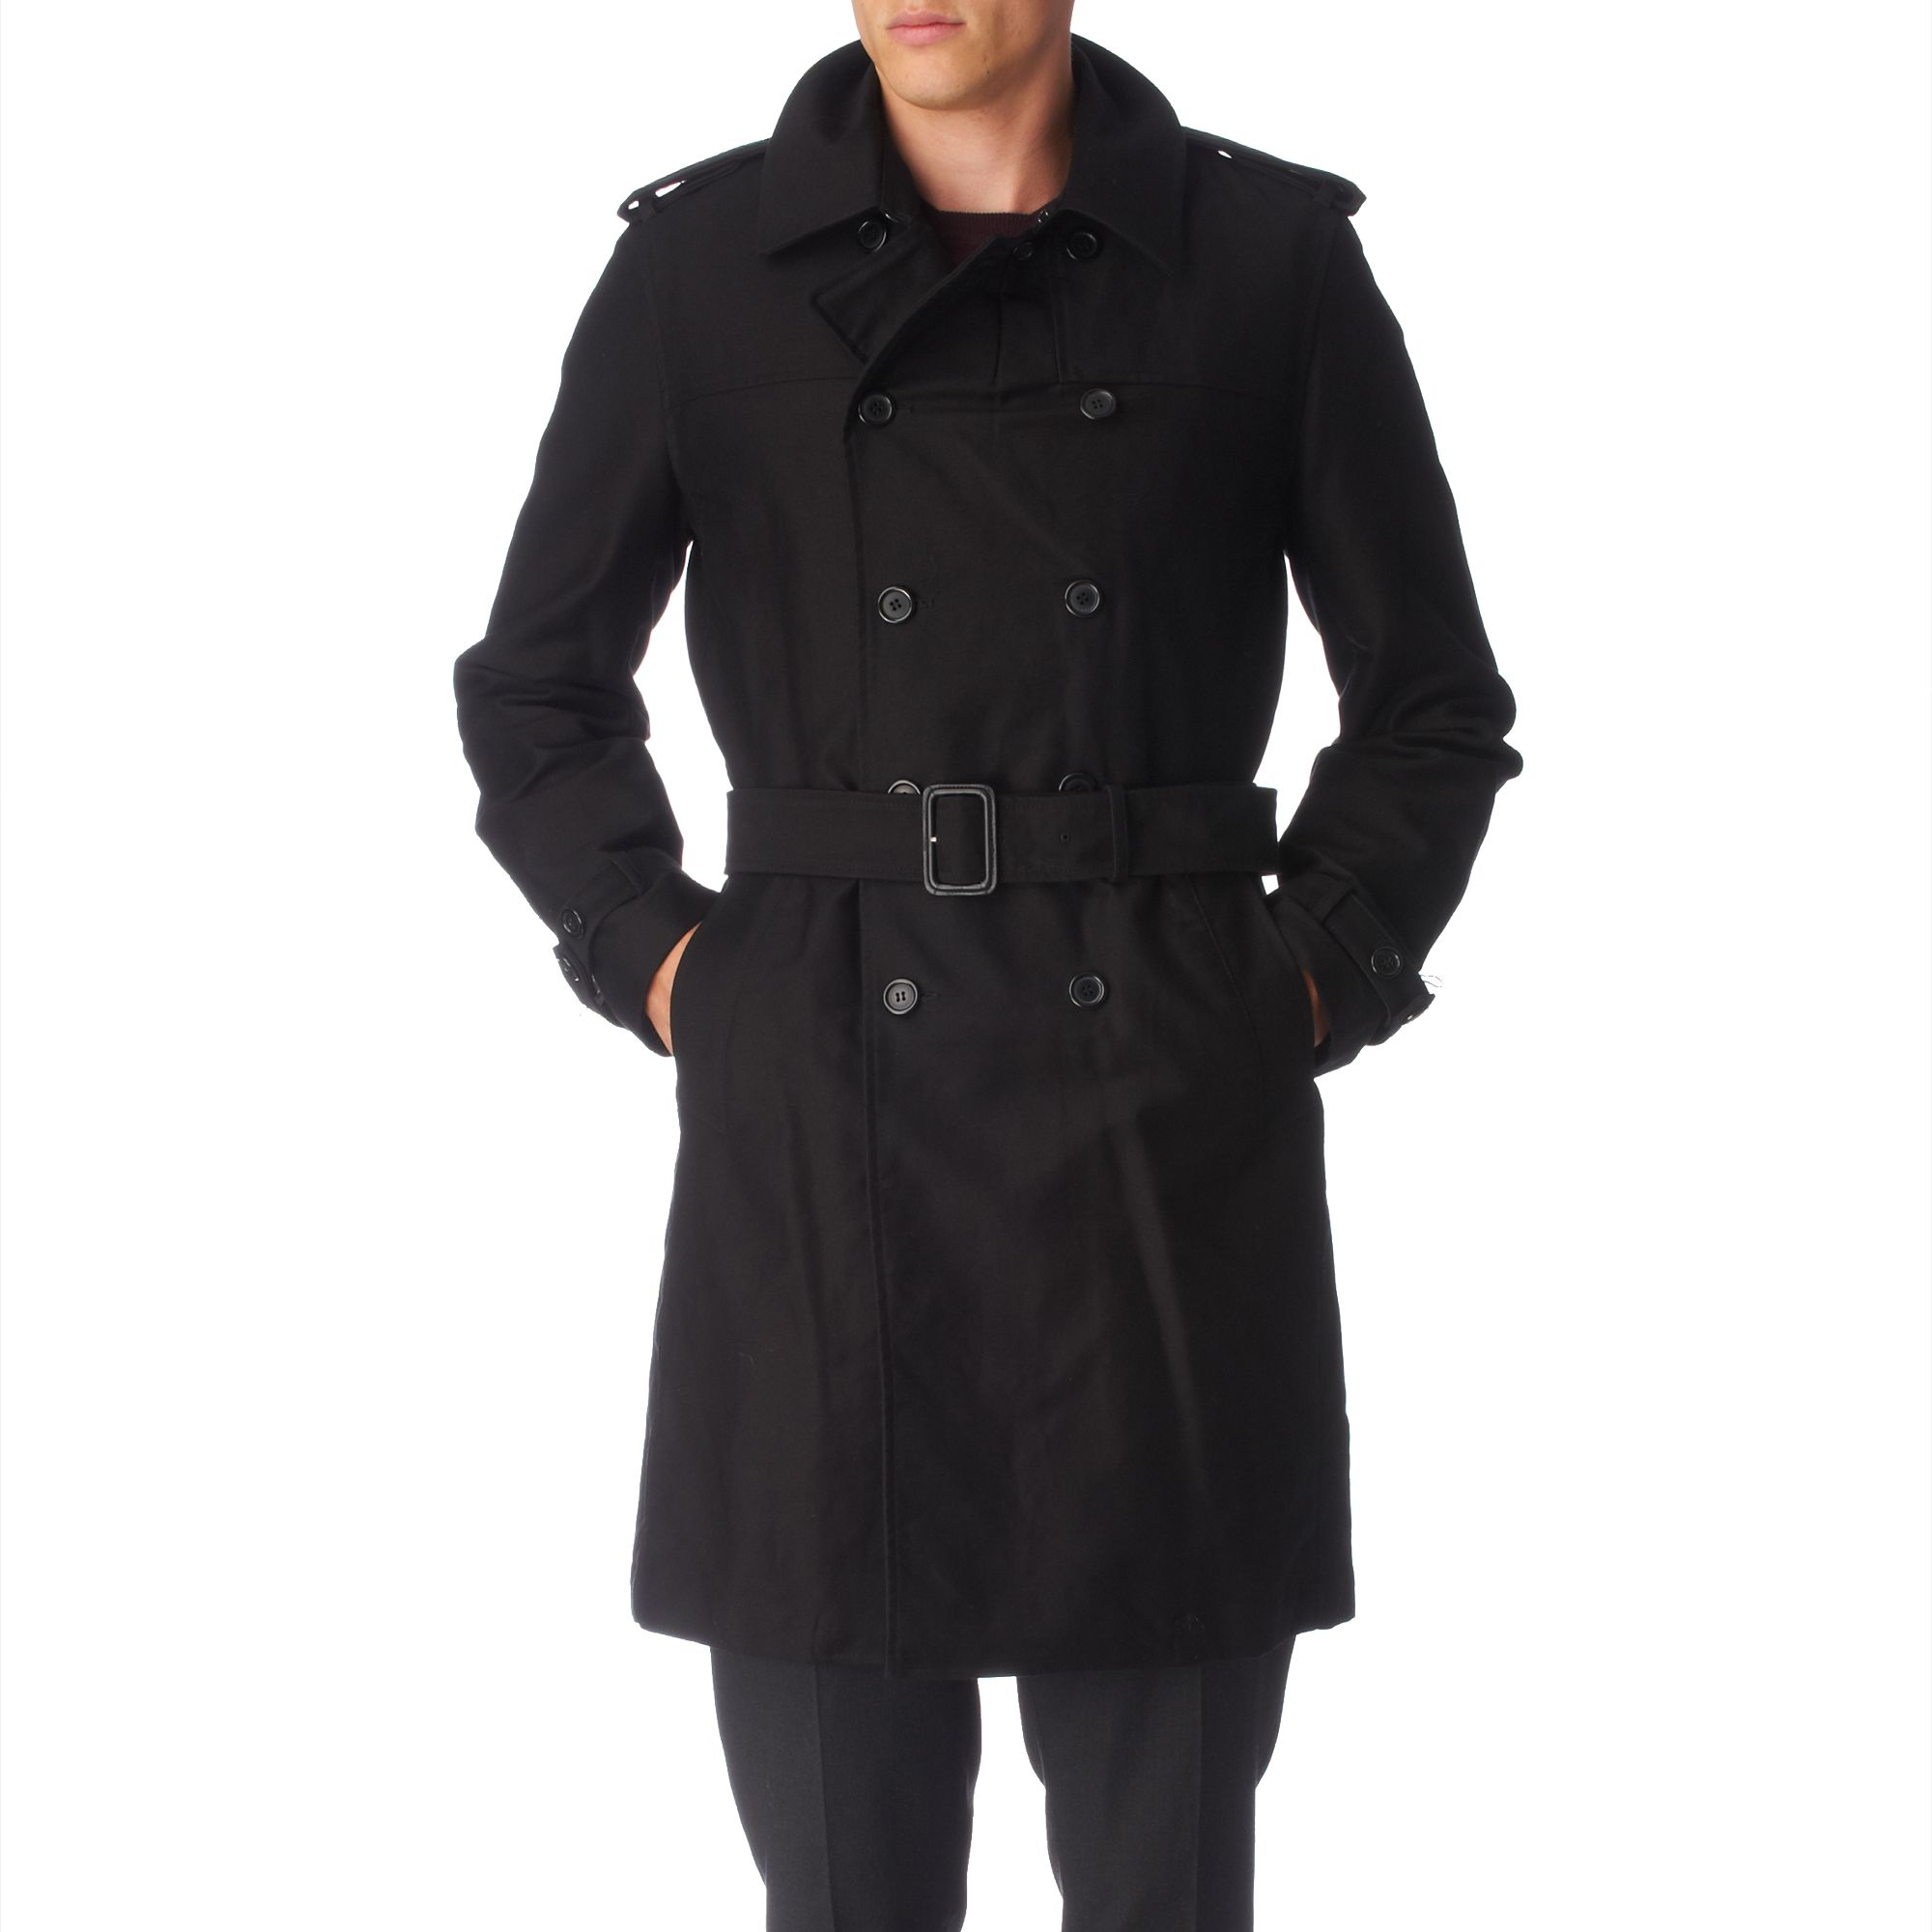 SKU#WQZ Men's Traditional Double-Breasted Long Coat with Rear Cape Black Leather long trench coat ~ Raincoat ~ Duster $ SKU#QDA Men's Classic 3/4-Length Coat with Belt Zip-To-Top China Collar Black Leather long trench coat ~ Raincoat ~ Duster $